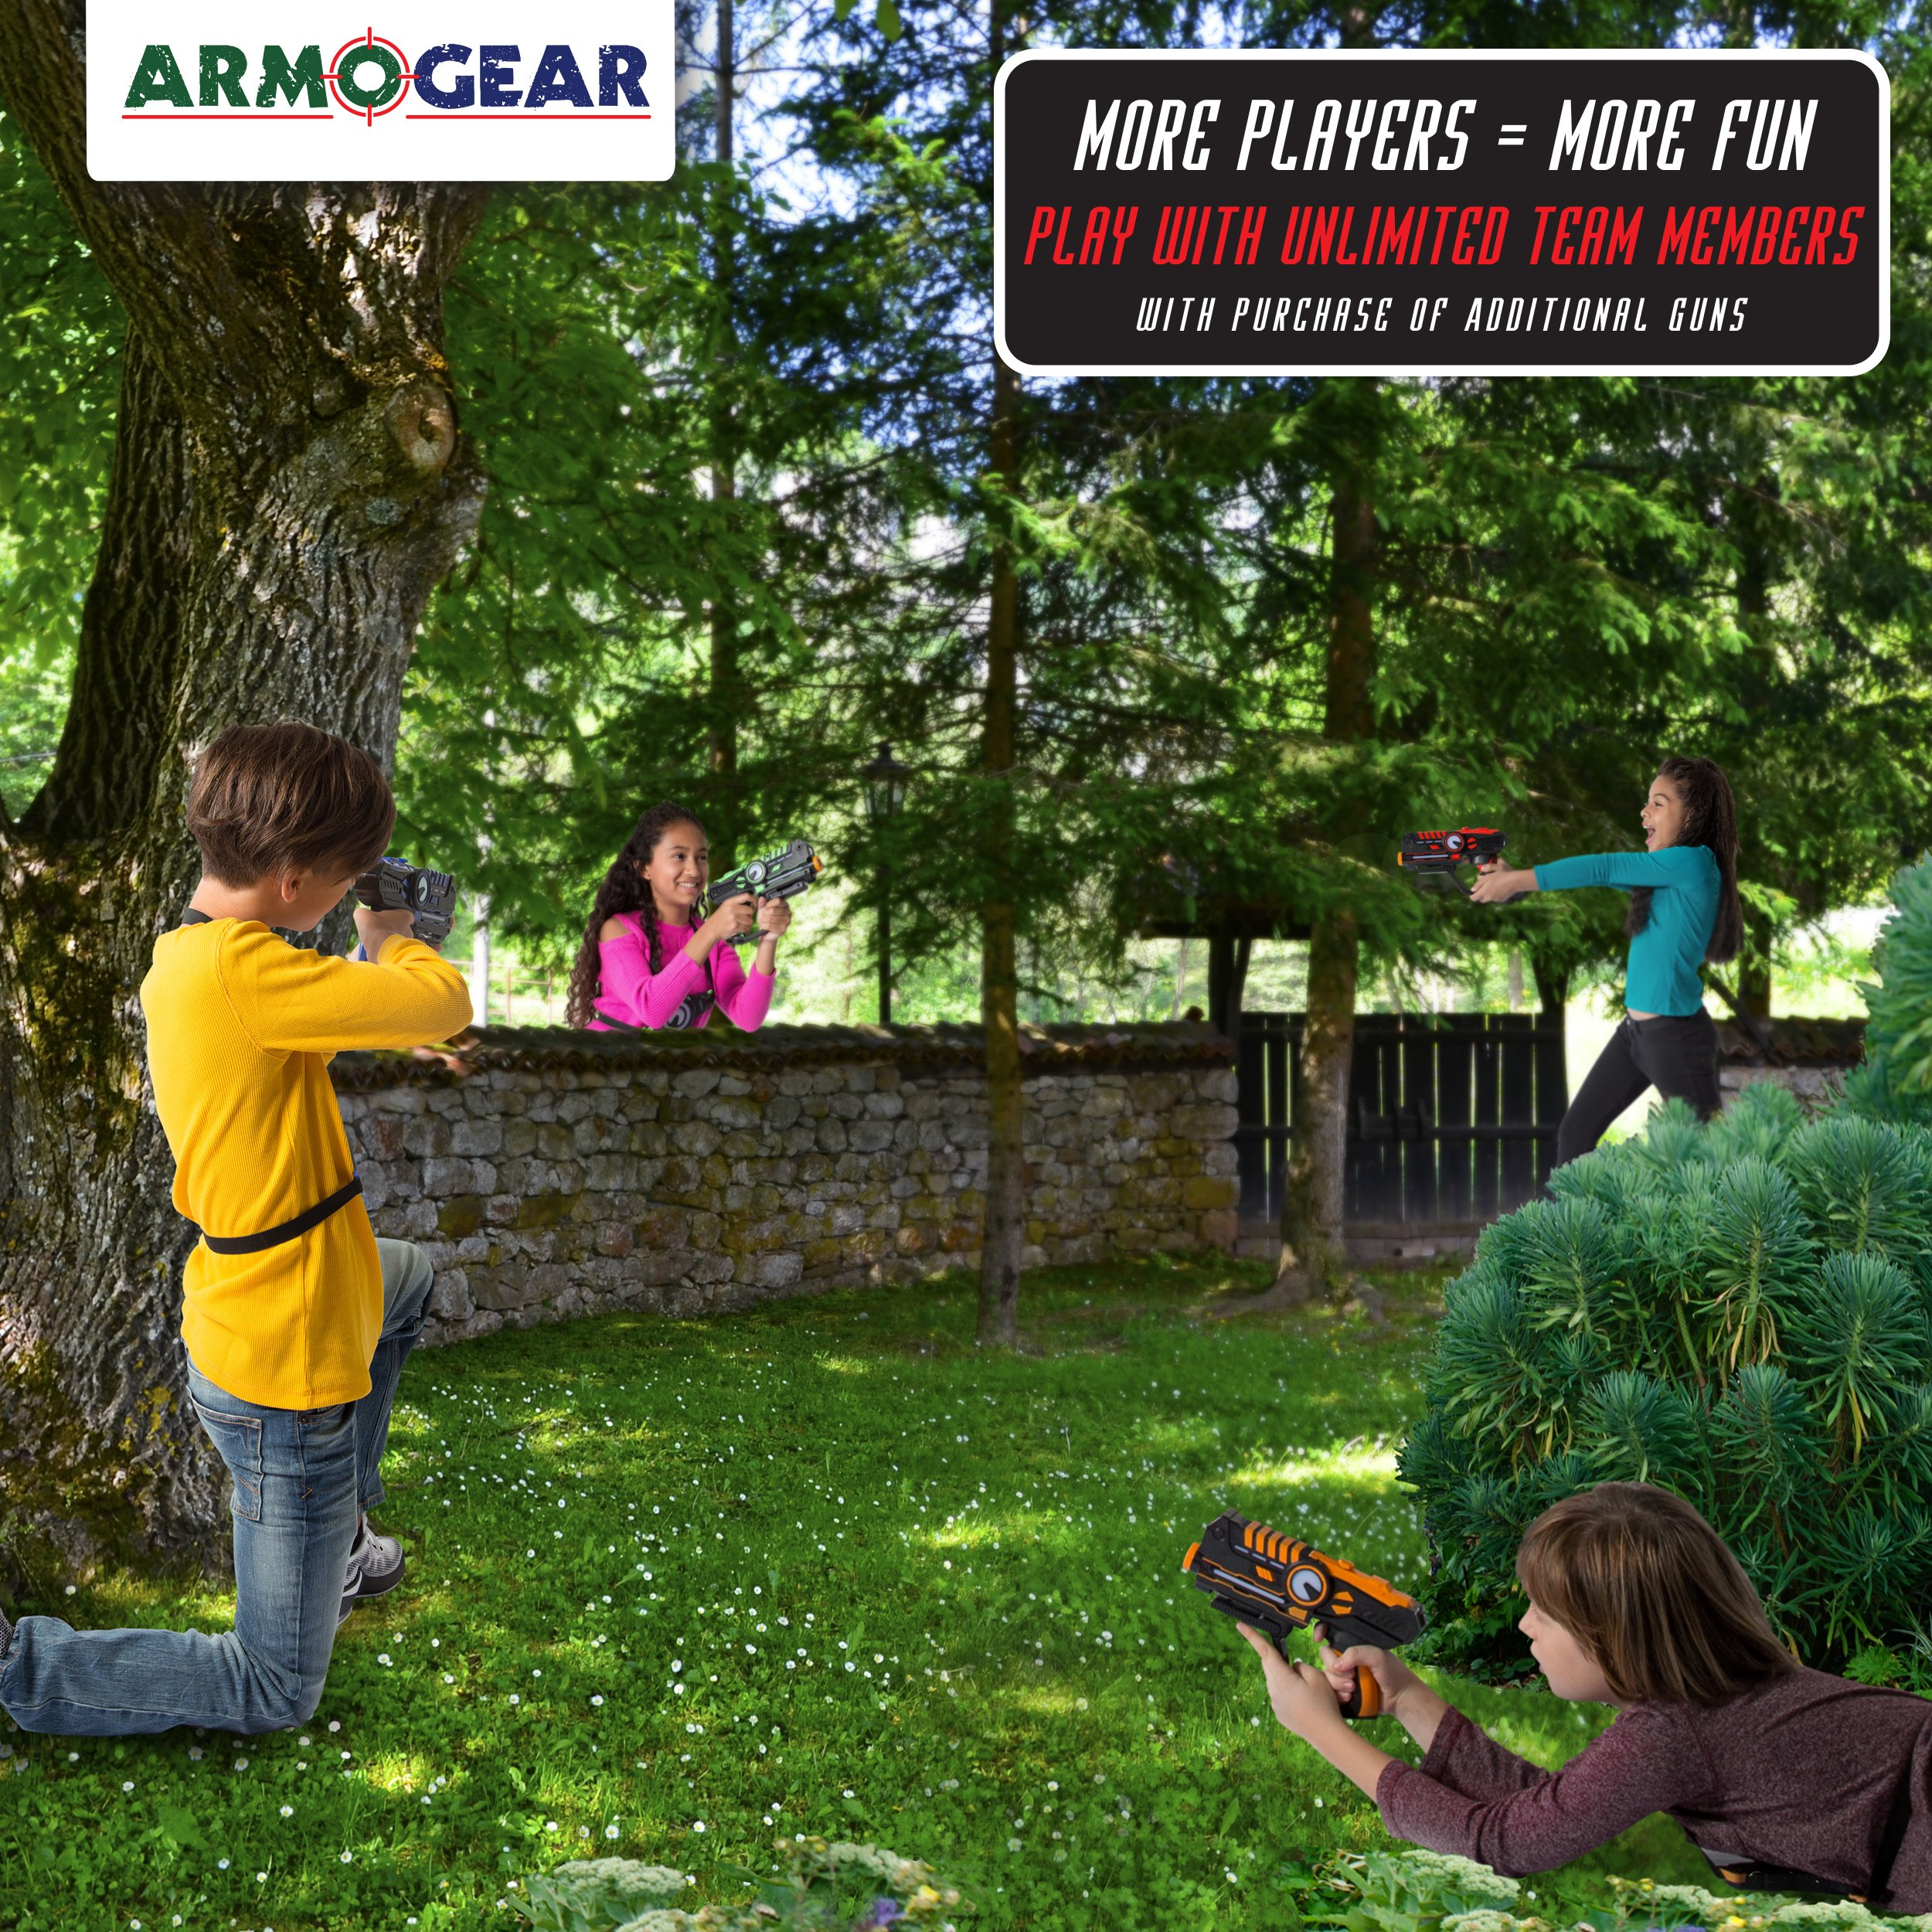 ArmoGear Infrared Laser Tag Guns and Vests - Laser Battle Game Pack Set of 2 - Infrared 0.9mW by ArmoGear (Image #7)